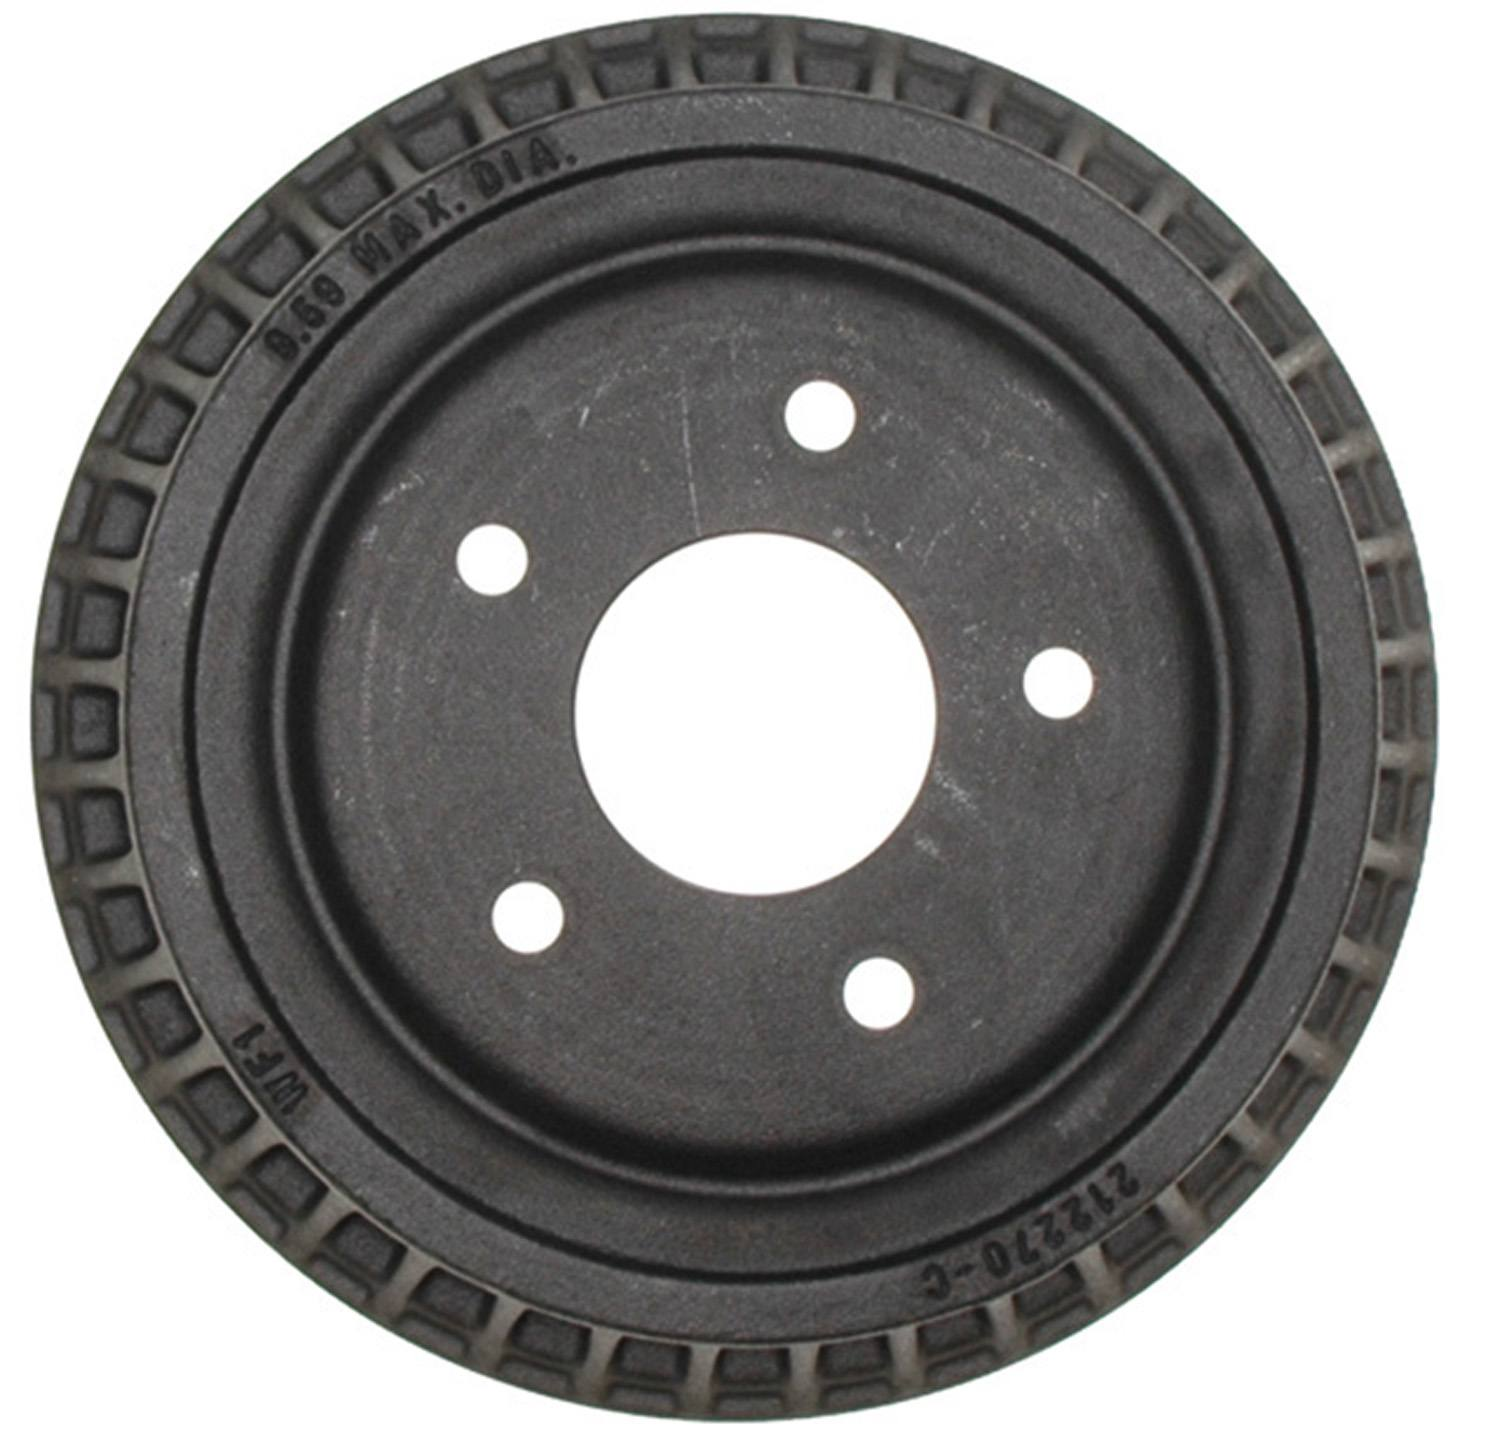 ACDELCO ADVANTAGE - Brake Drum - DCD 18B201A